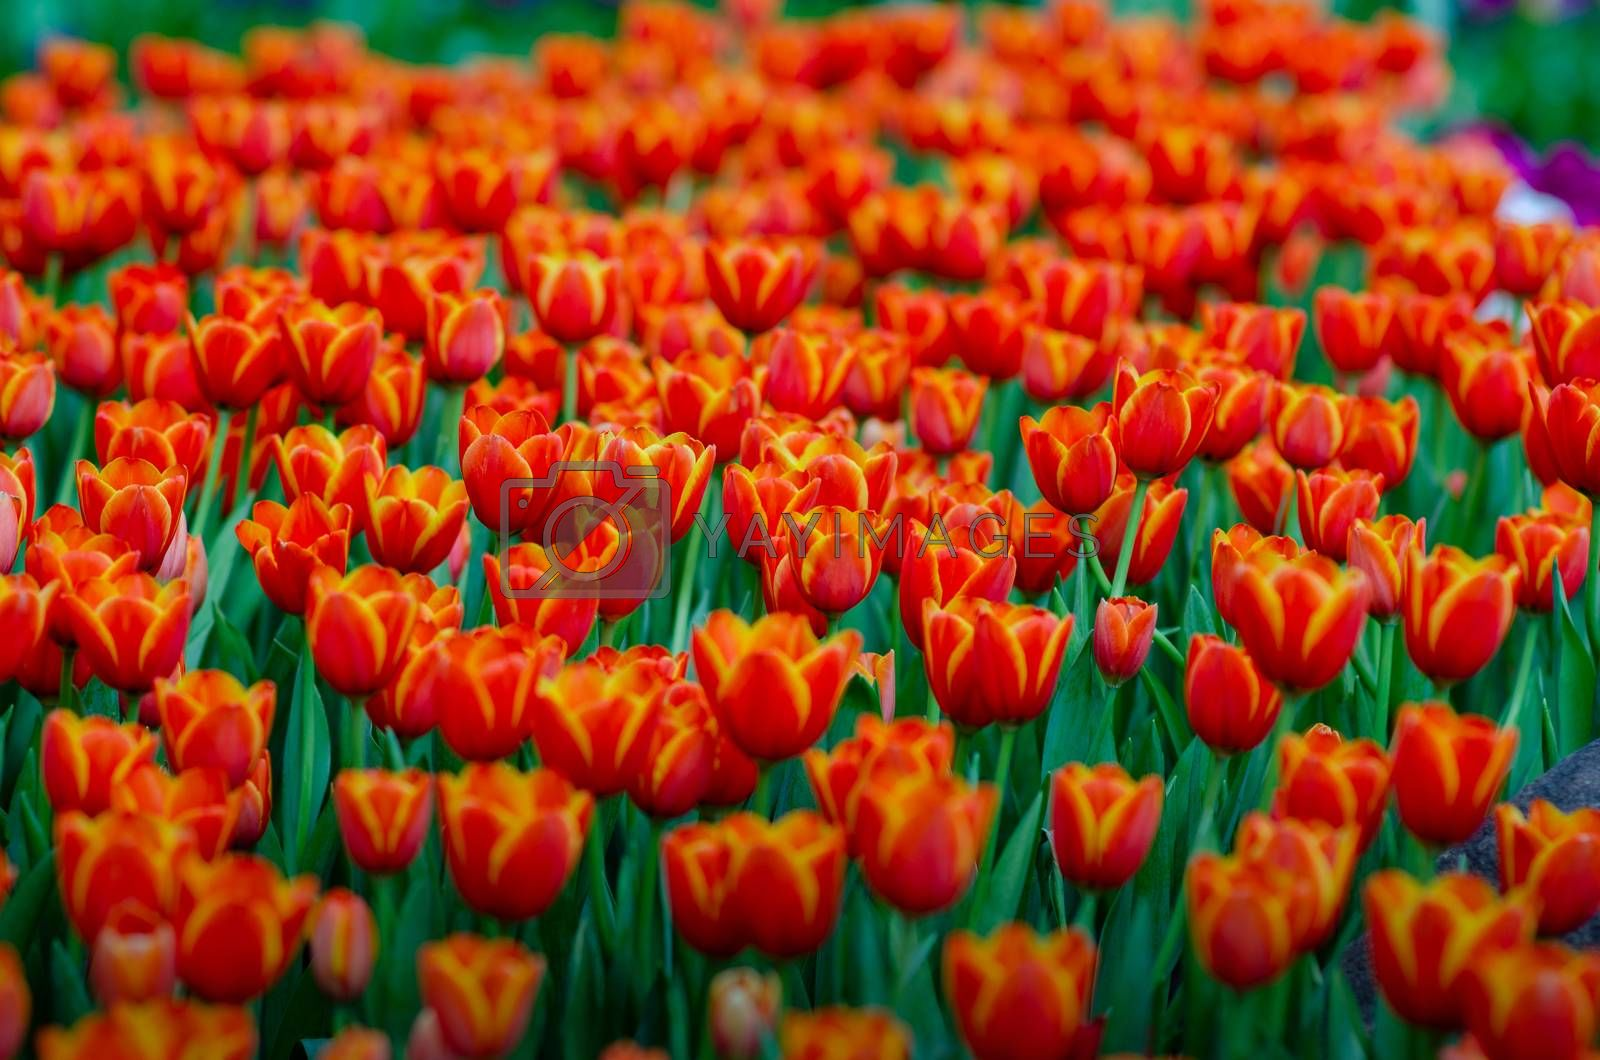 The red yellow tulip fields are densely blooming by Sarayut